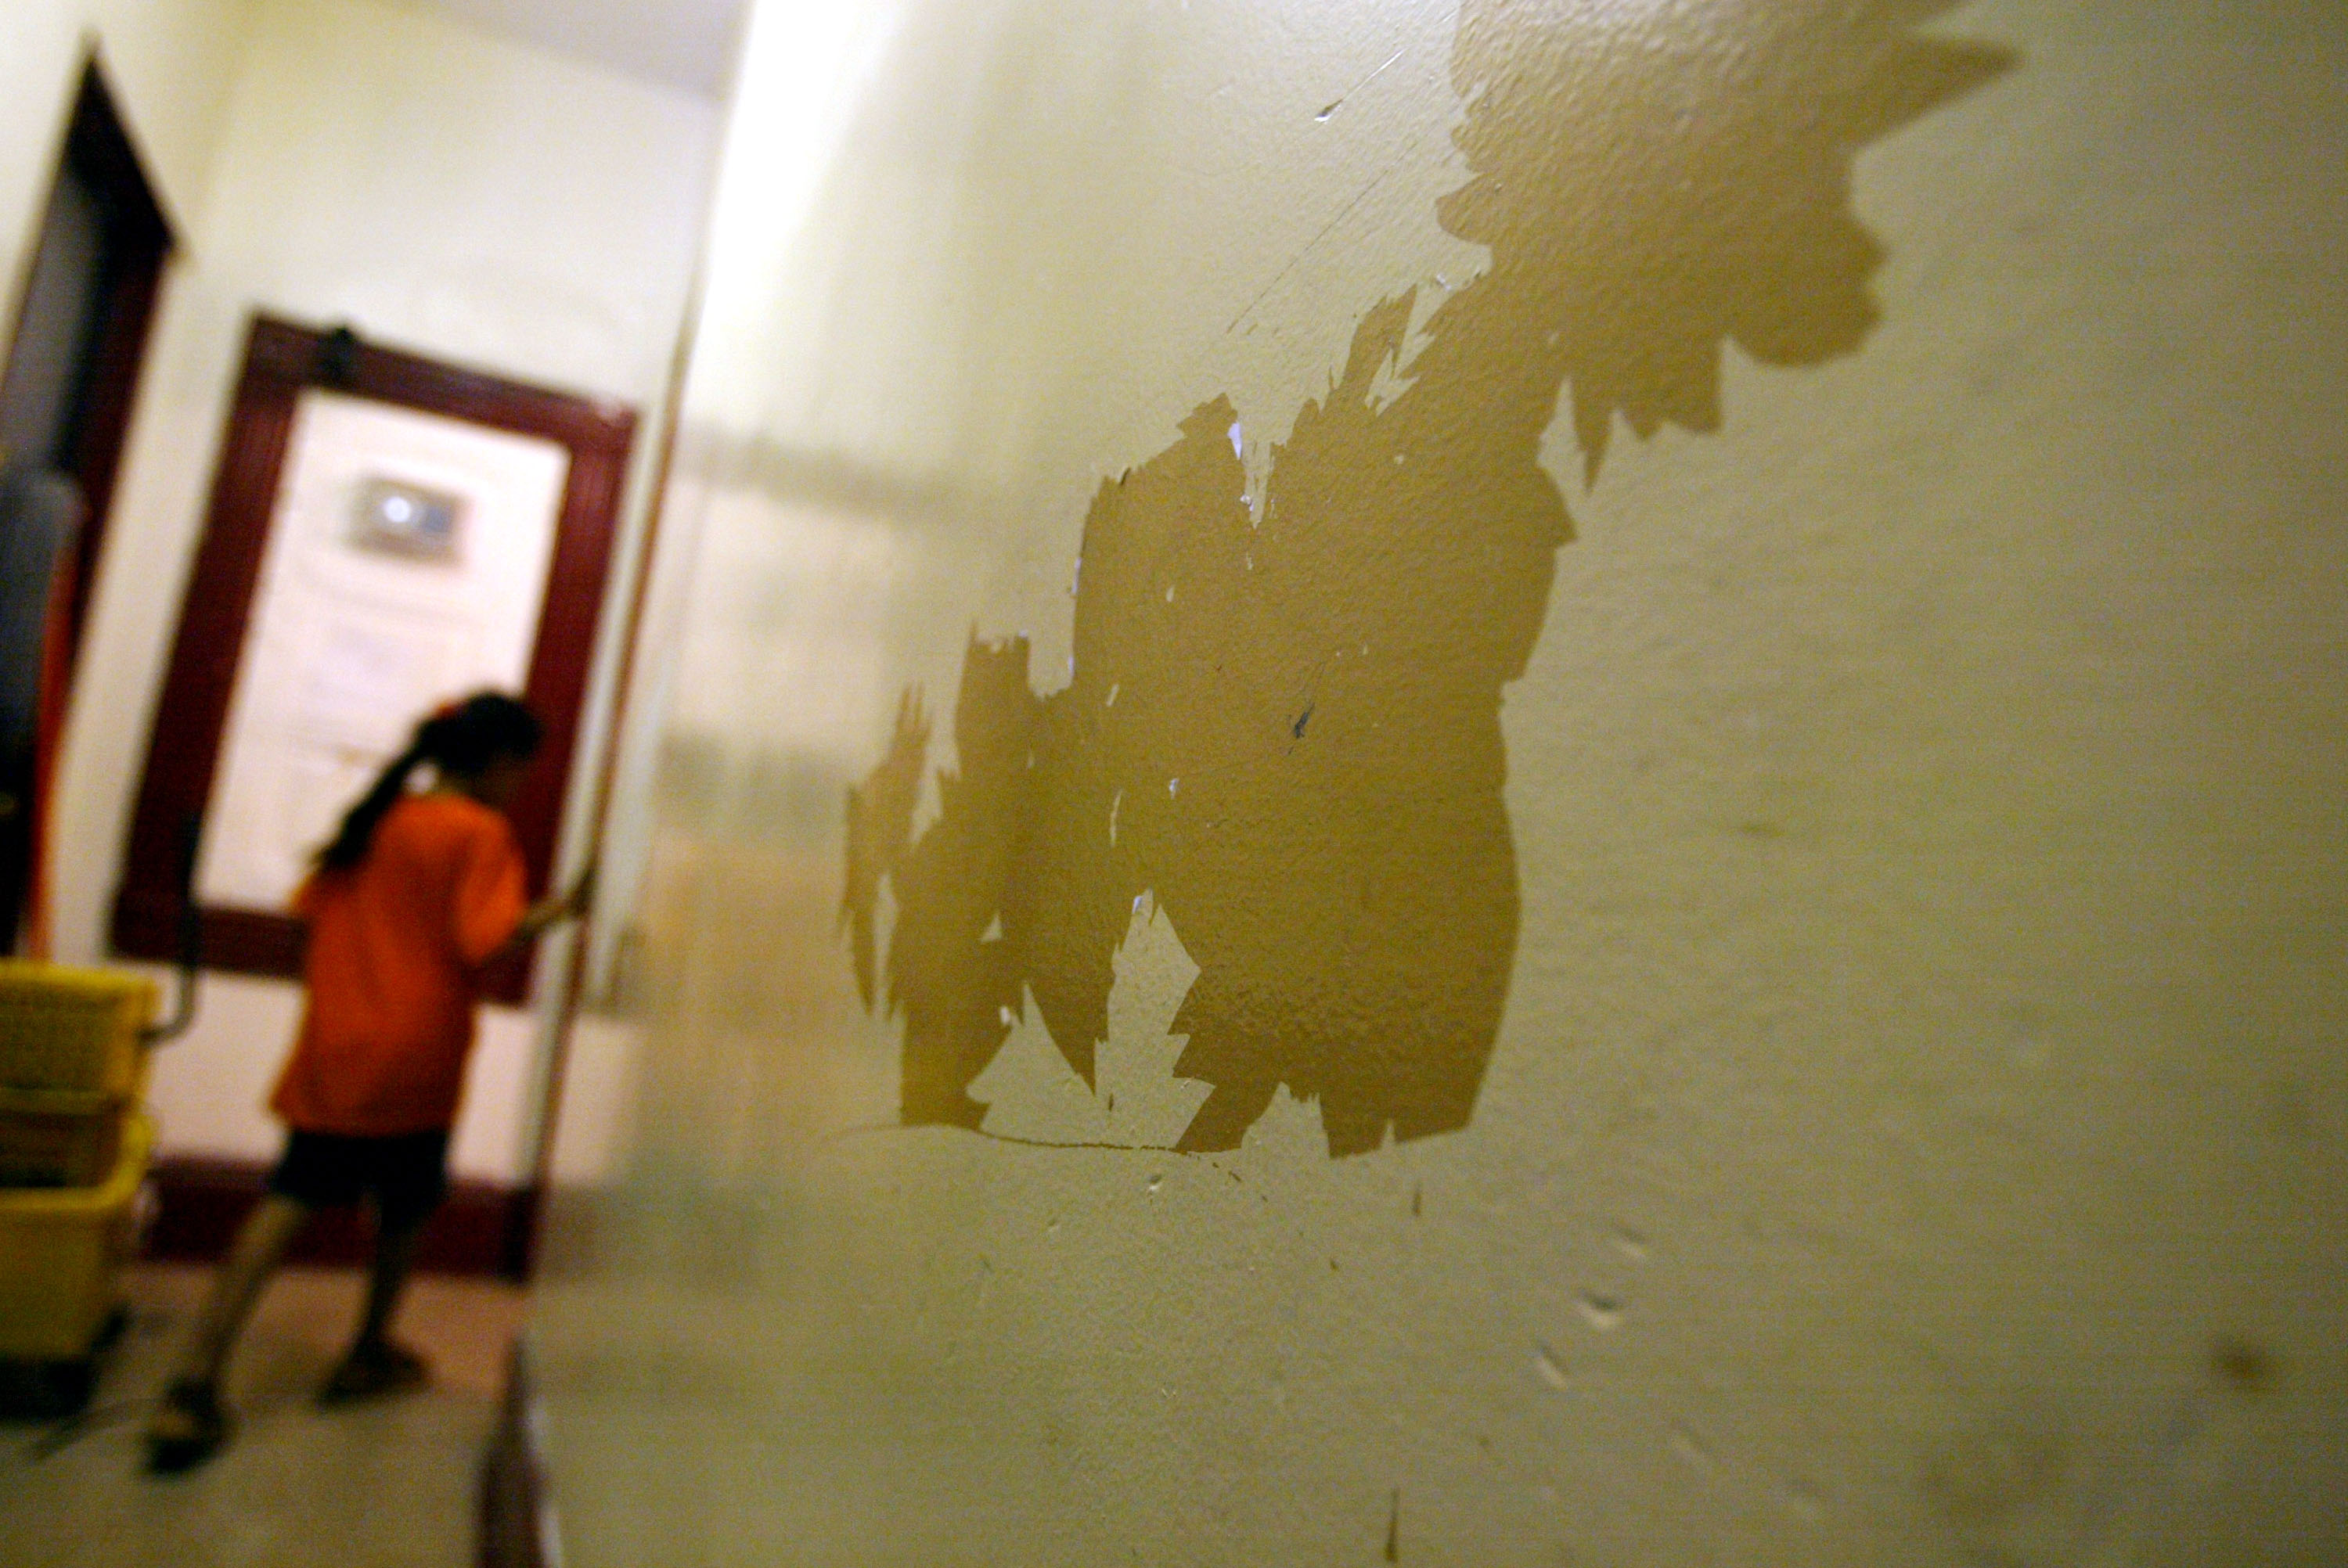 The New York City Housing Authority announced it will check for lead paint in community centers with programs serving young children.